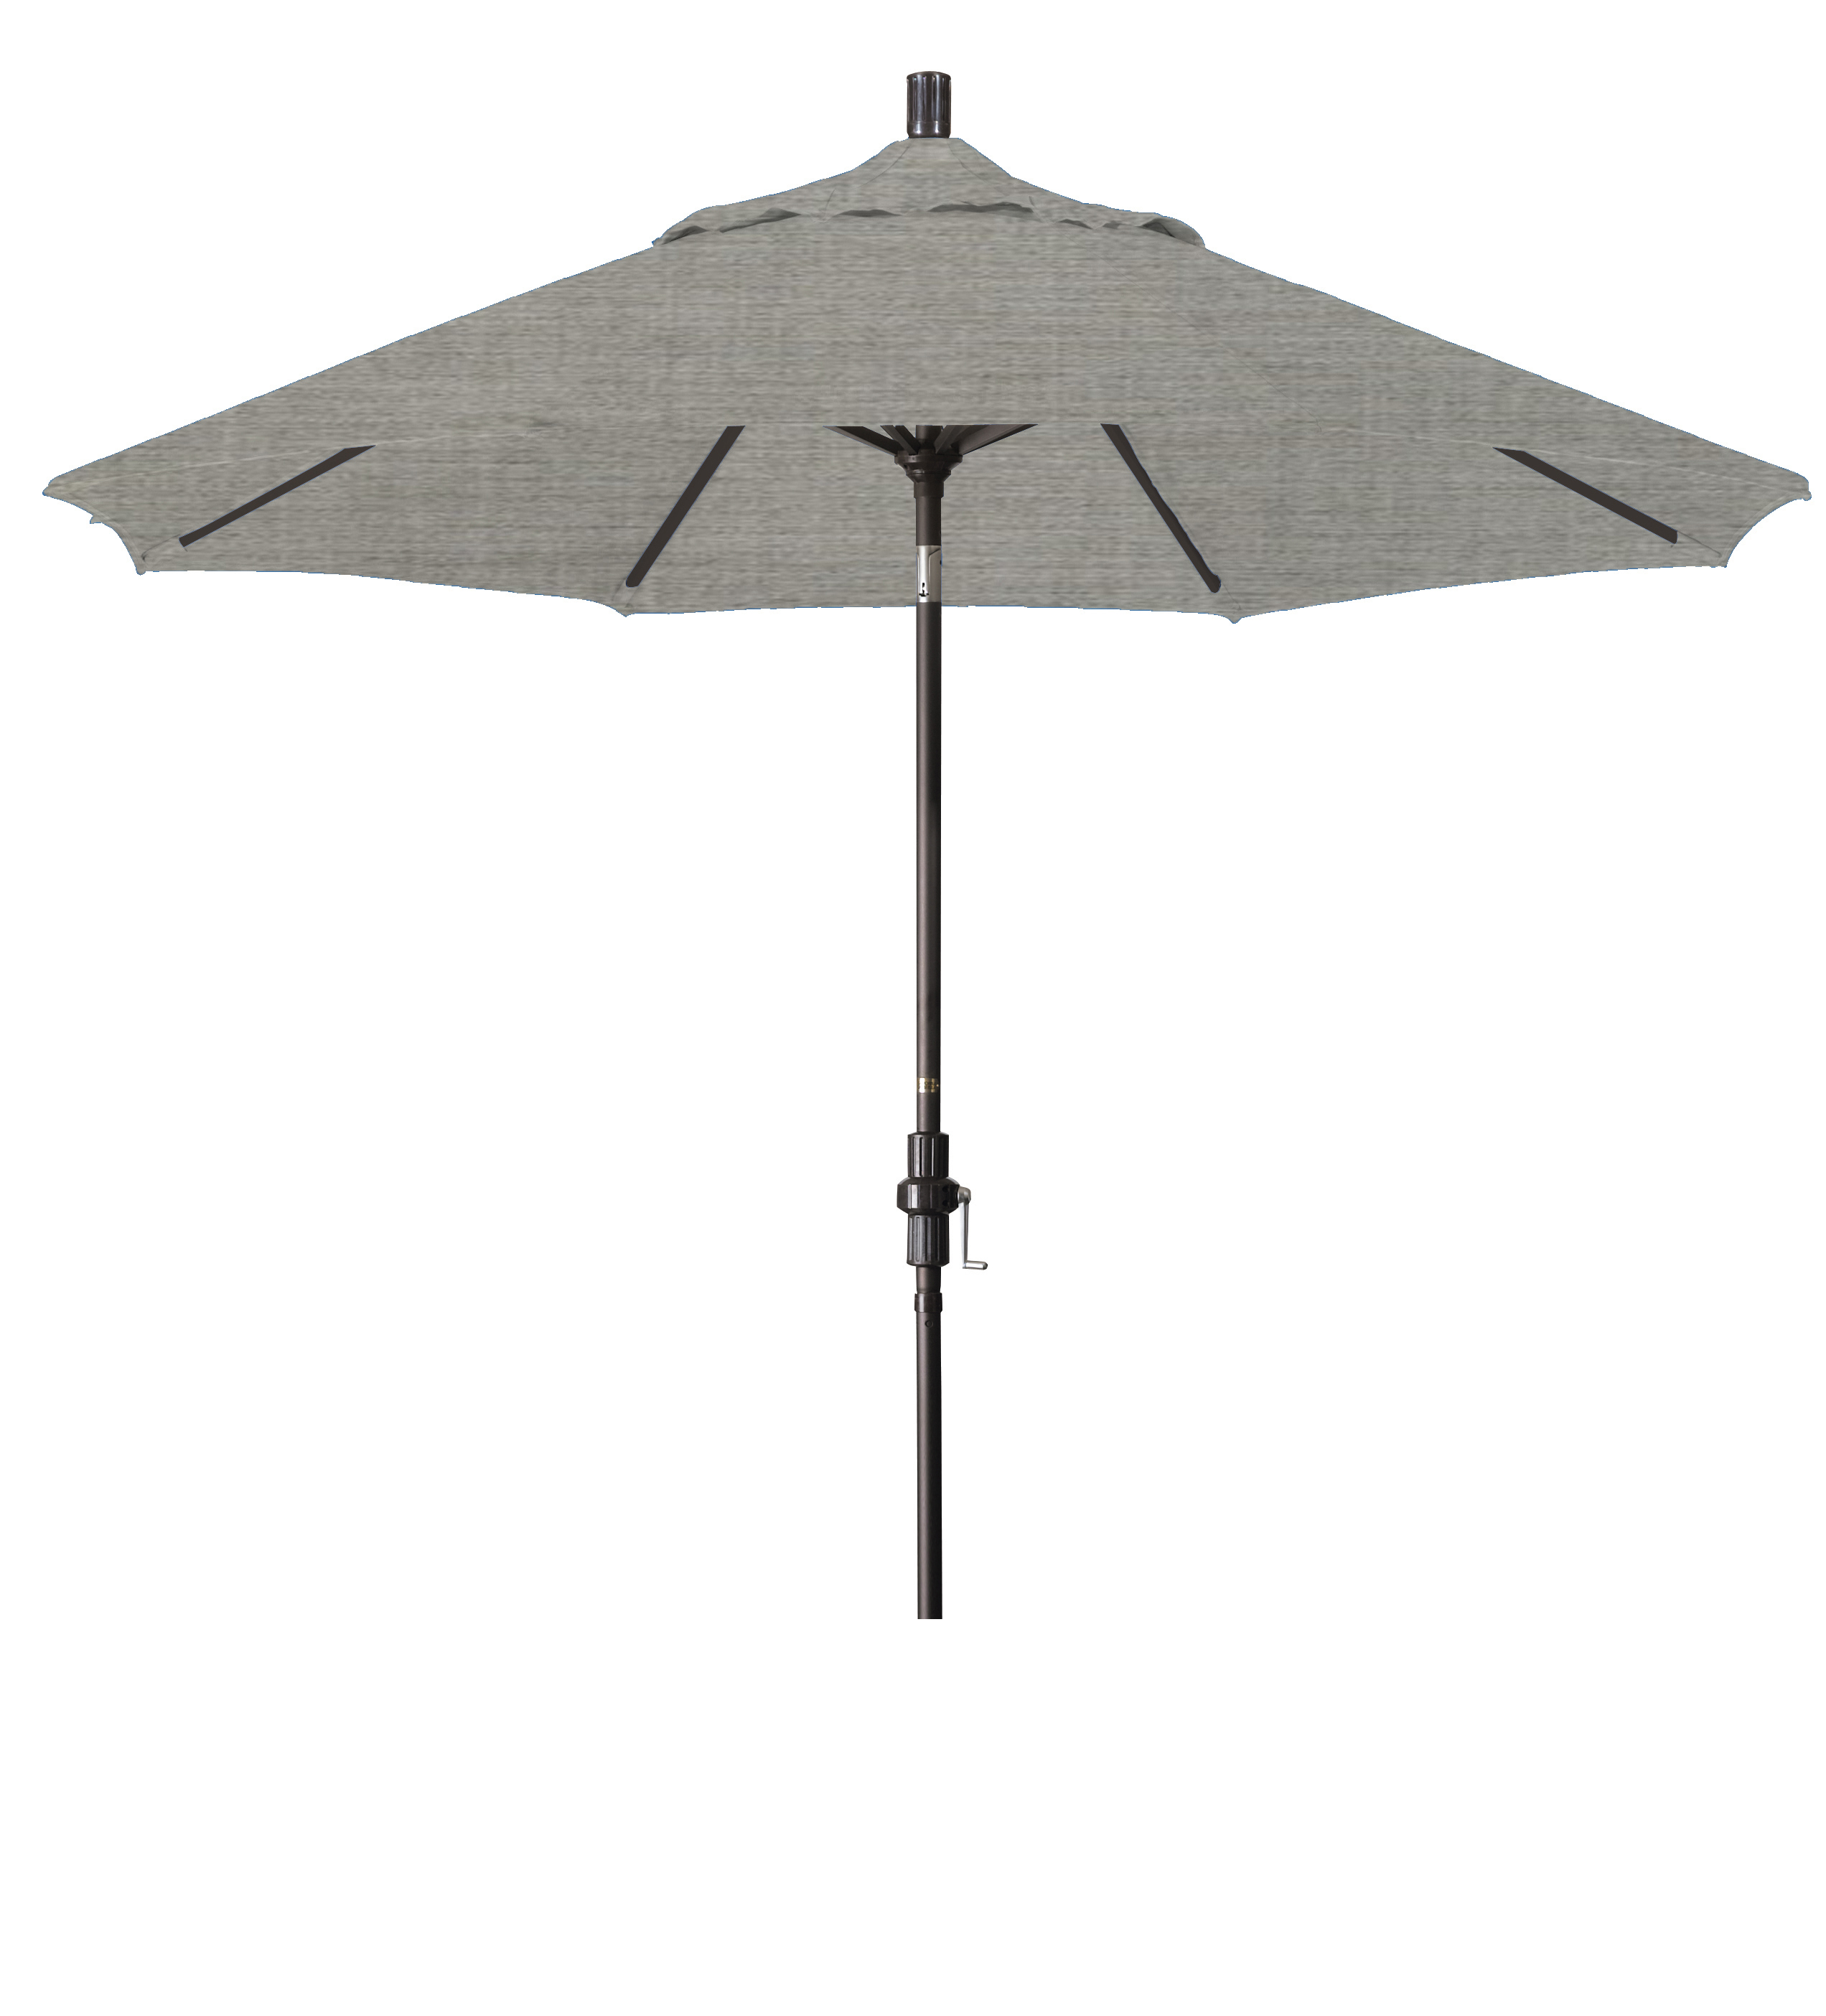 Market Umbrella Aluminum Collar Tilt Sunbrella Canvas Henna 5407